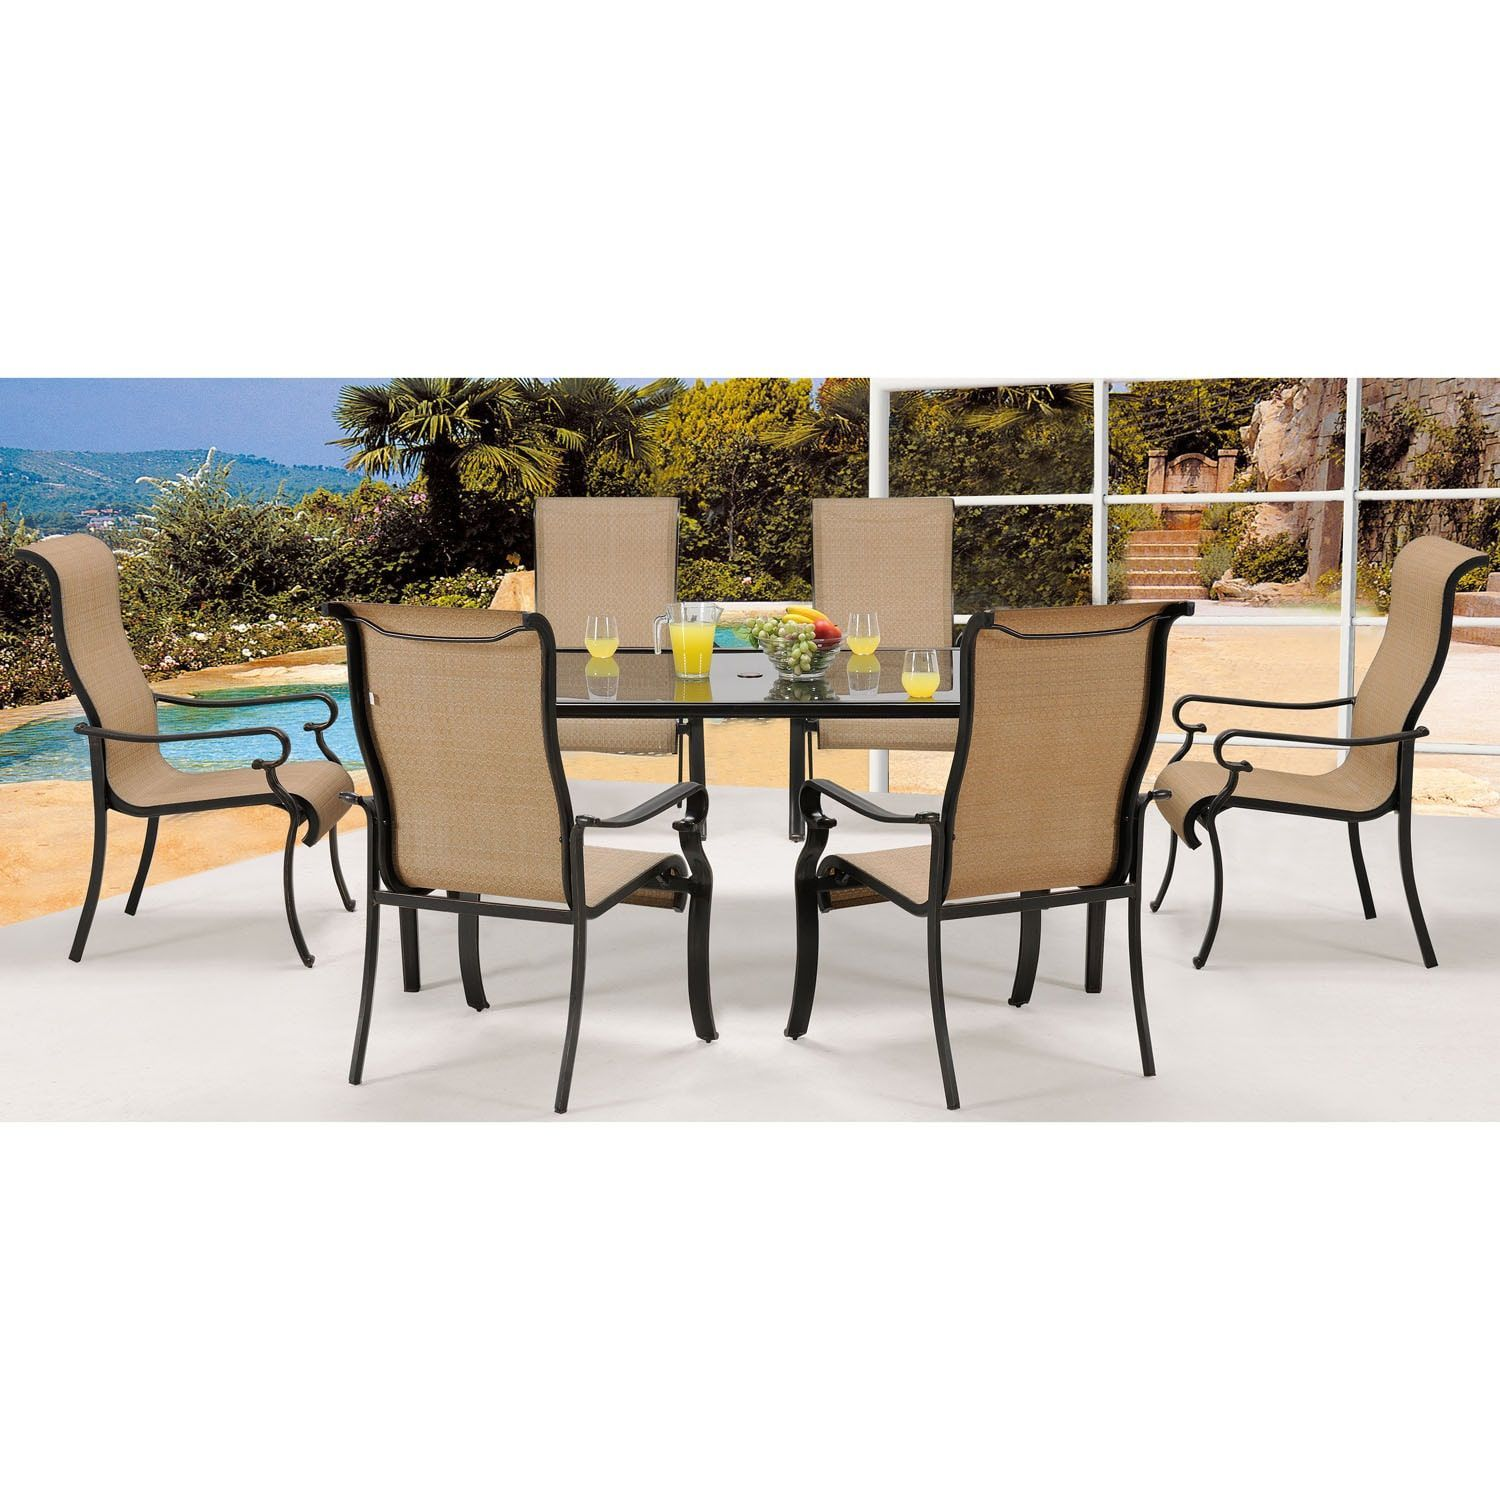 Cambridge hammond beige aluminum 7 piece outdoor dining set tan size 7 piece sets patio furniture